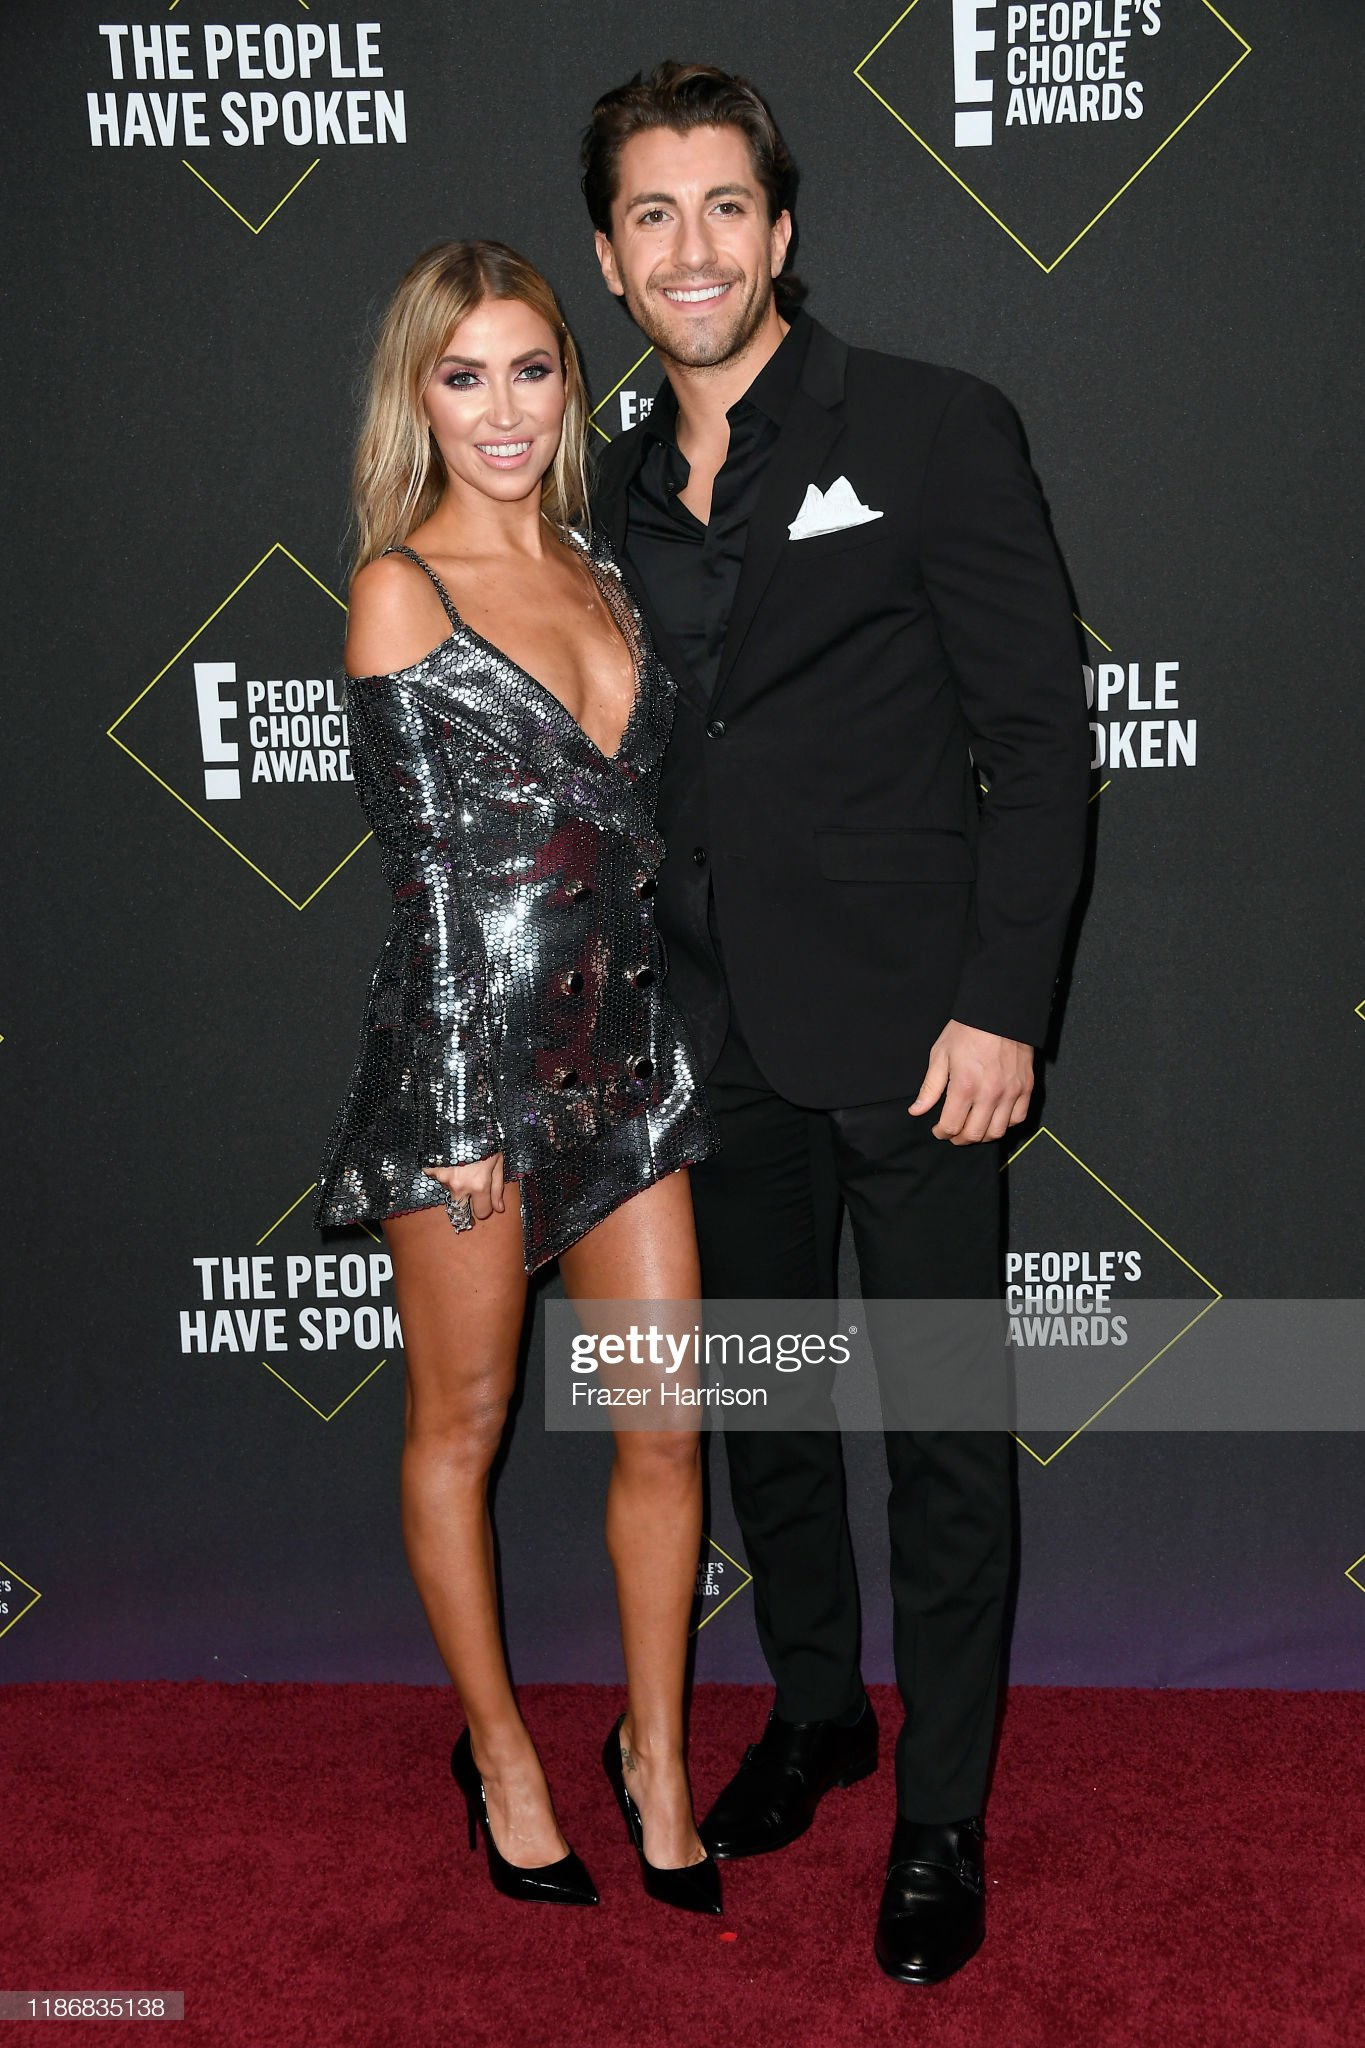 Kaitlyn Bristowe - Jason Tartick - FAN Forum - Discussion  - Page 45 Kaitlyn-bristowe-and-jason-tartick-attend-the-2019-e-peoples-choice-picture-id1186835138?s=2048x2048